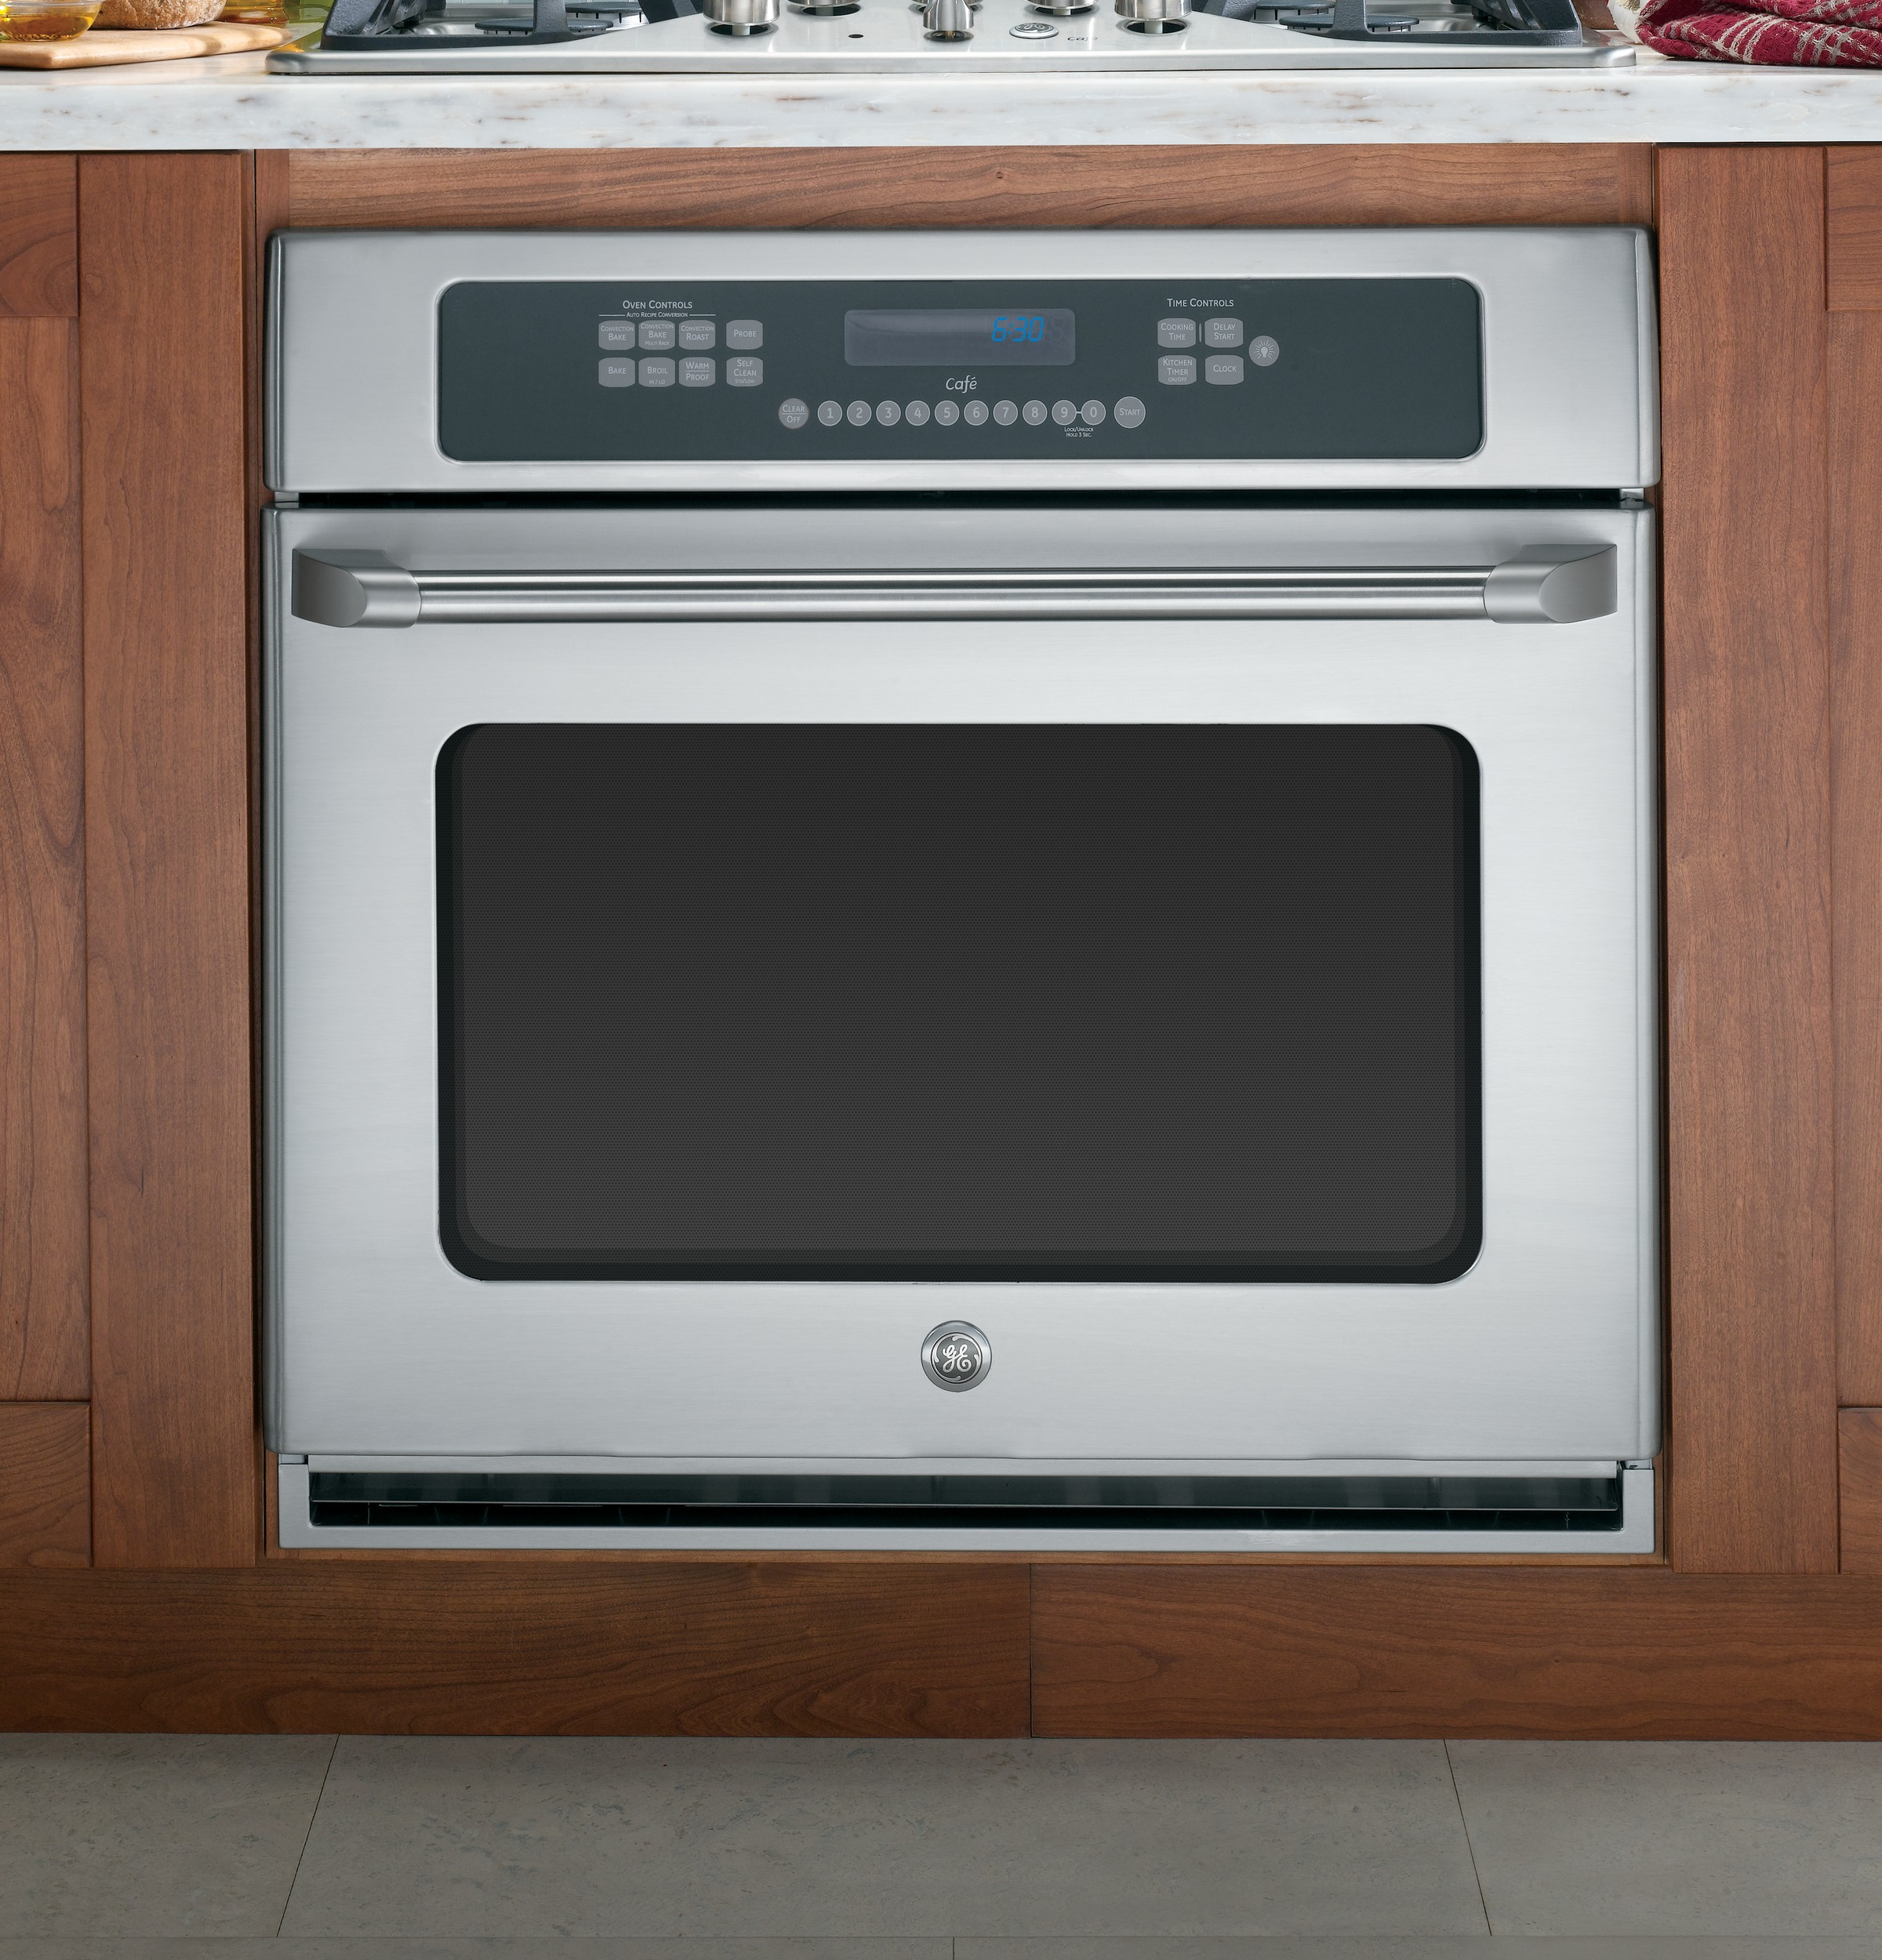 "Model: CT918STSS | GE Cafe GE Café™ Series 30"" Built-In Single Convection Wall Oven"